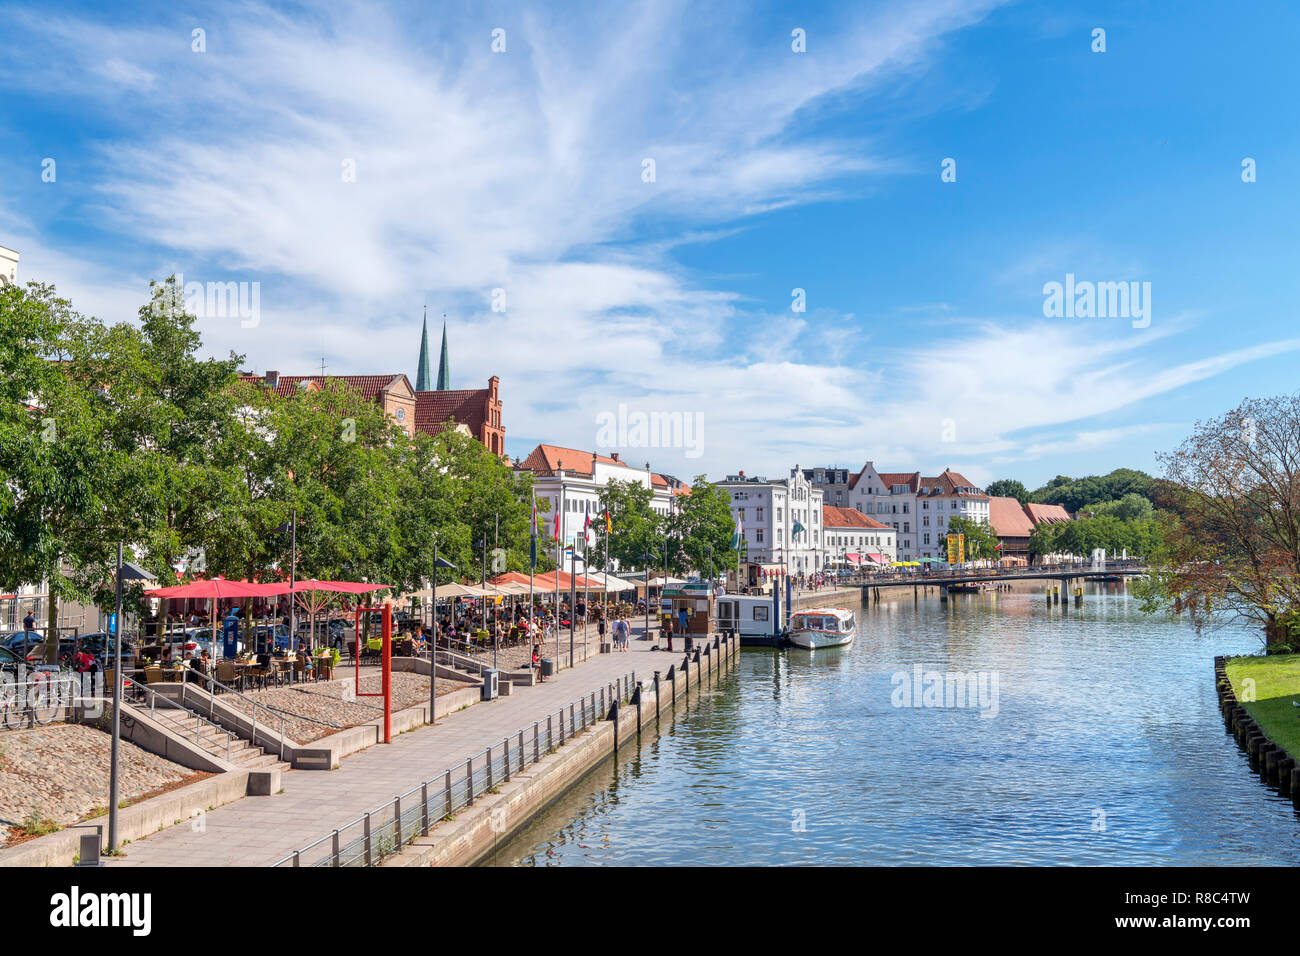 Cafes along the River Trave, An der Obertrave, Lubeck, Schleswig-Holstein, Germany - Stock Image